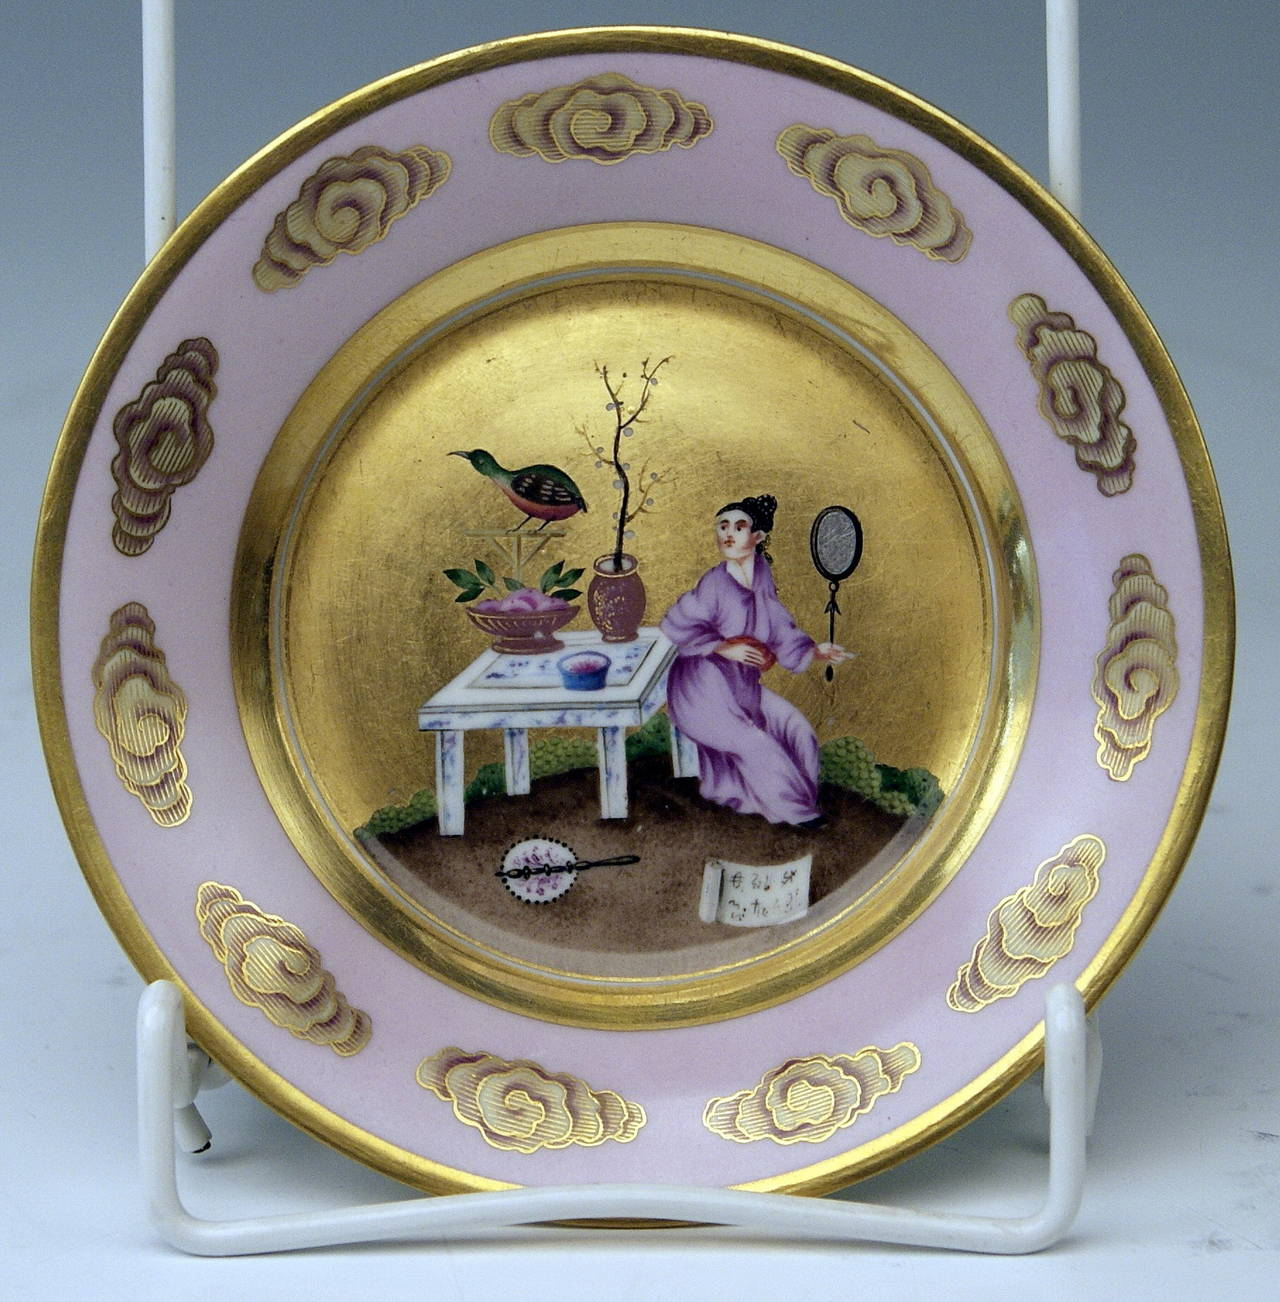 Vienna Imperial Porcelain Cup Saucer Chinese Style Paintings Dated 1817 Austria For Sale 1